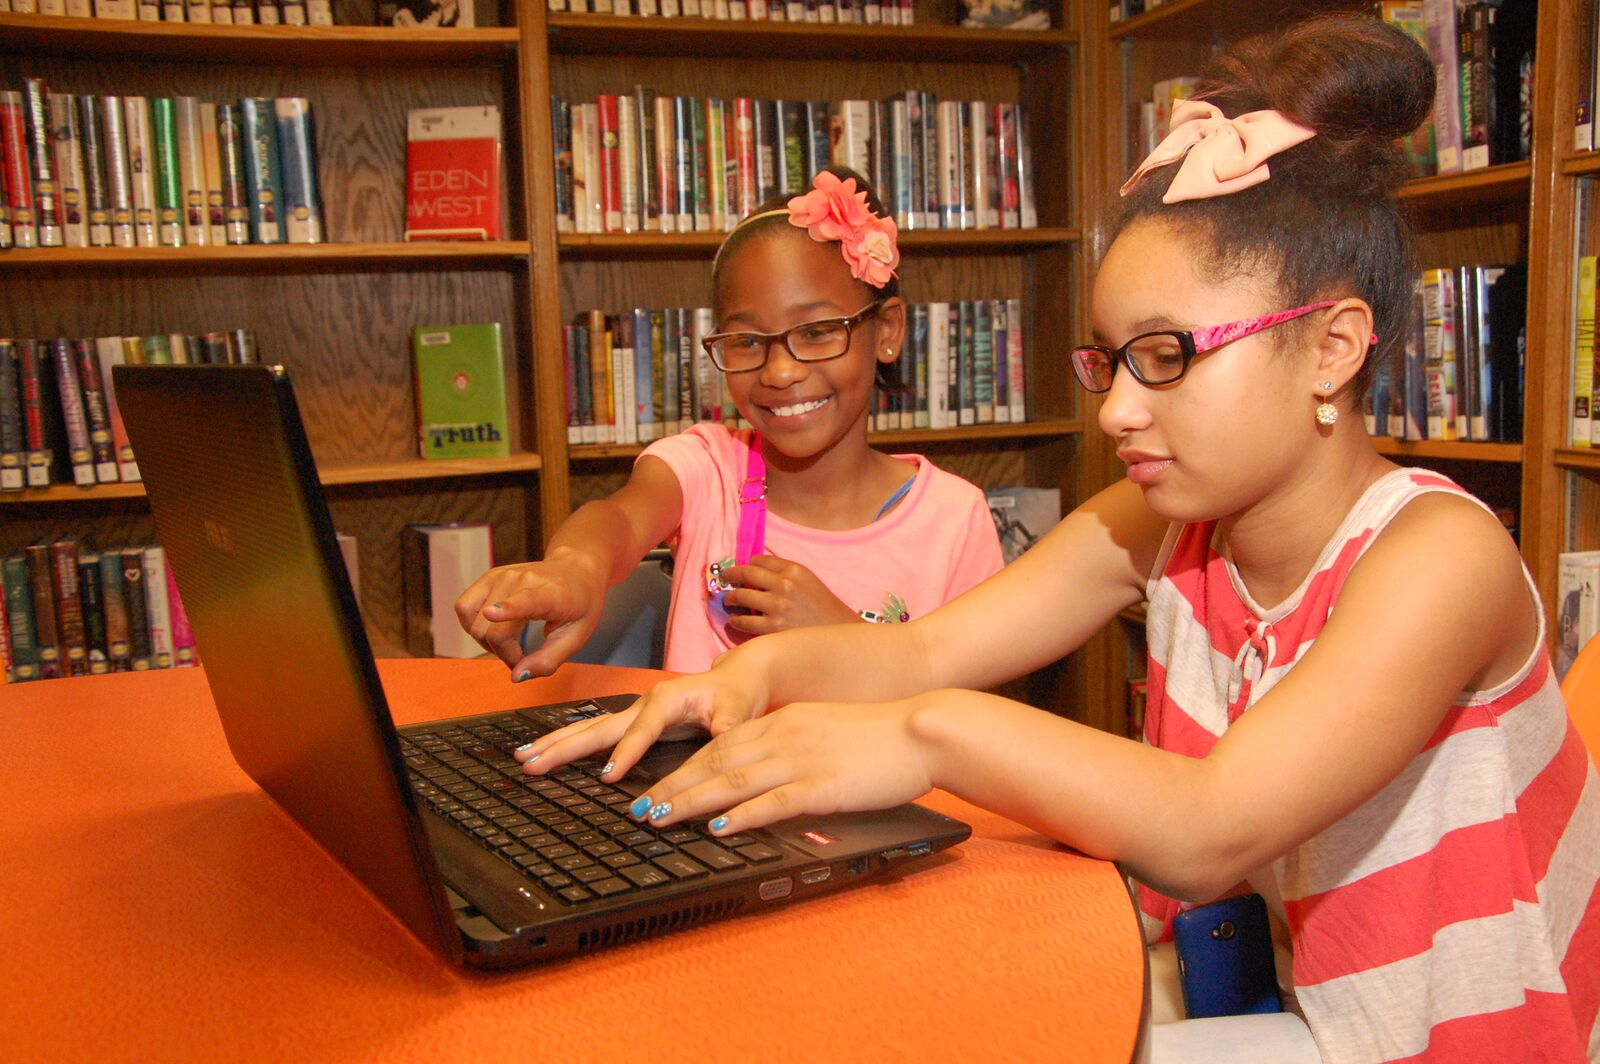 Location: Brentwood Public Library. Photographer: Kirsten Petty